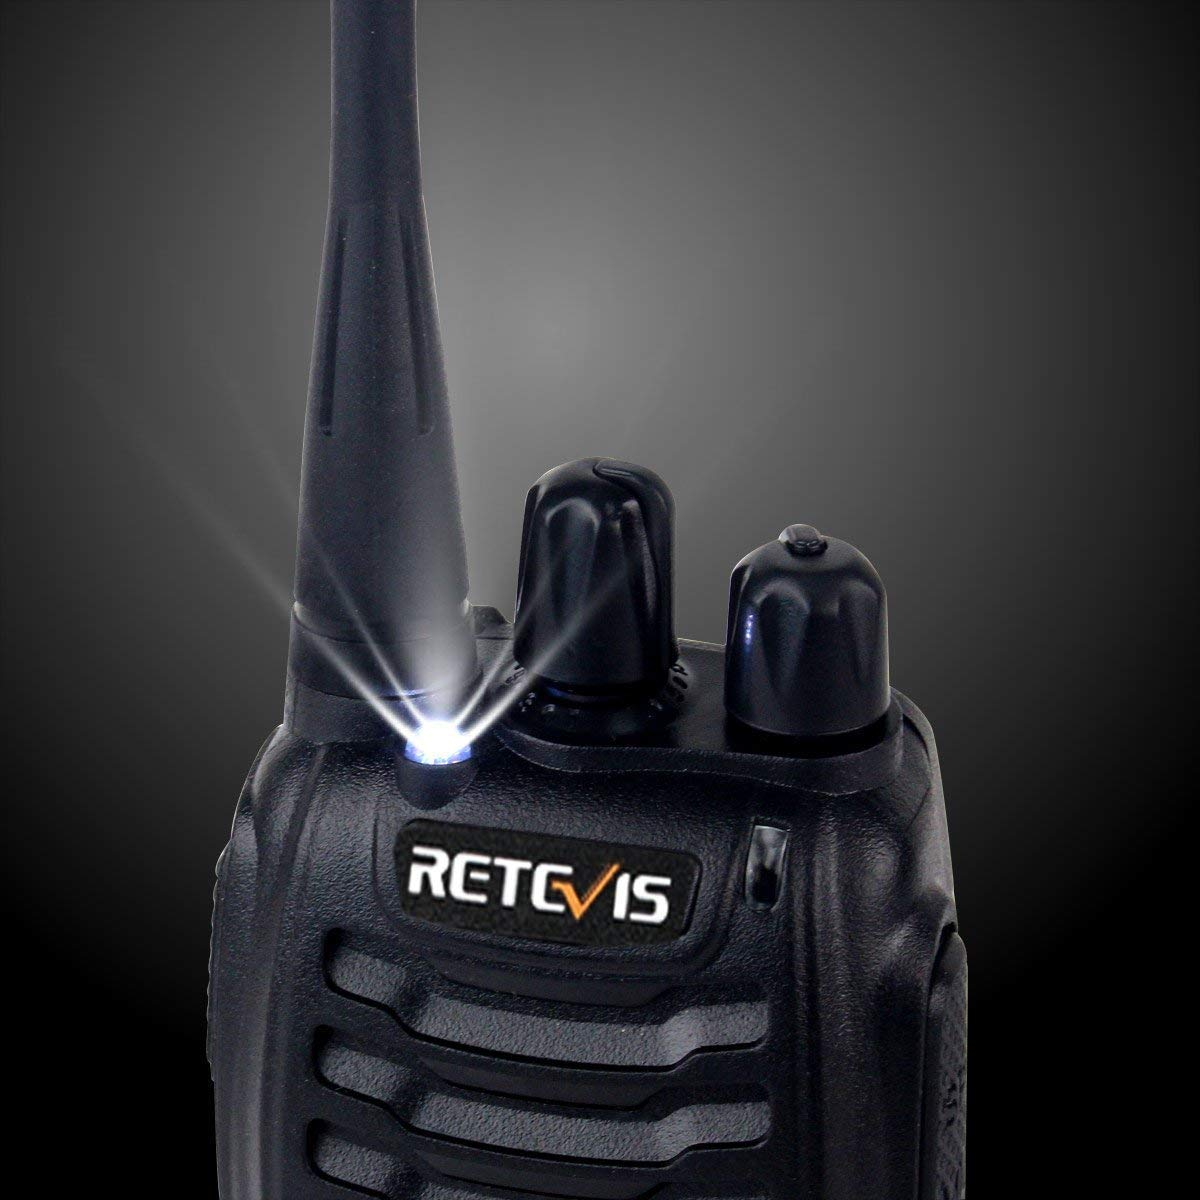 Retevis H-777 Two Way Radios UHF Radio 2 Way Radios Fast and Safe USB Rechargeable 16CH Radio Walkie Talkies (10 Pack) by Retevis (Image #5)